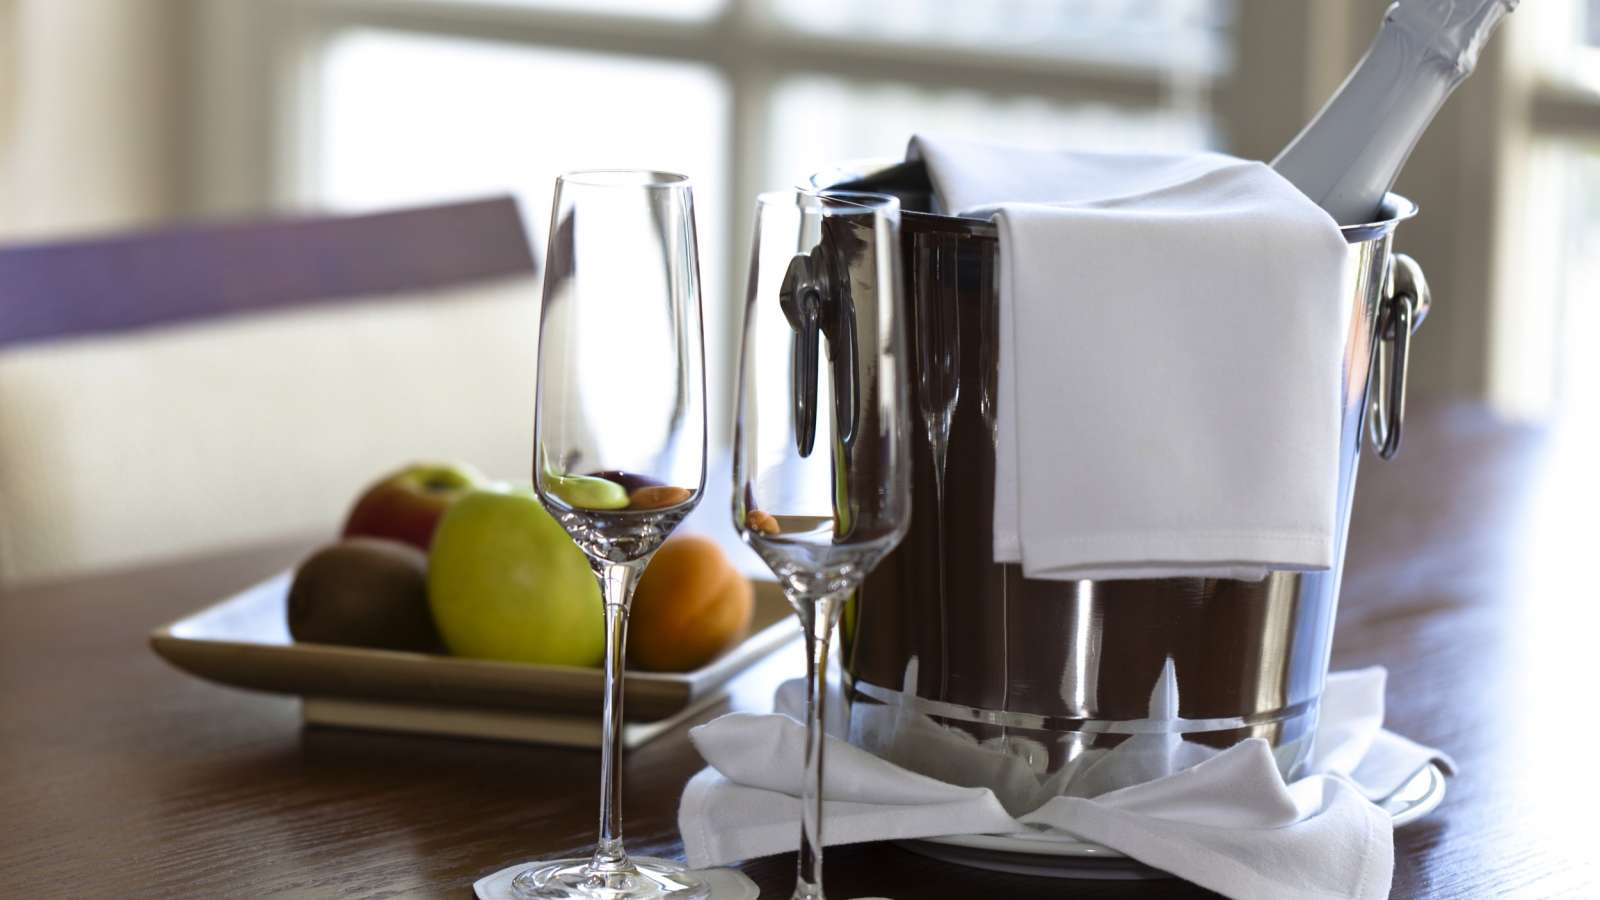 Book the Centro Hotel Celebration Package, including sparkling wine and a fruit basket!